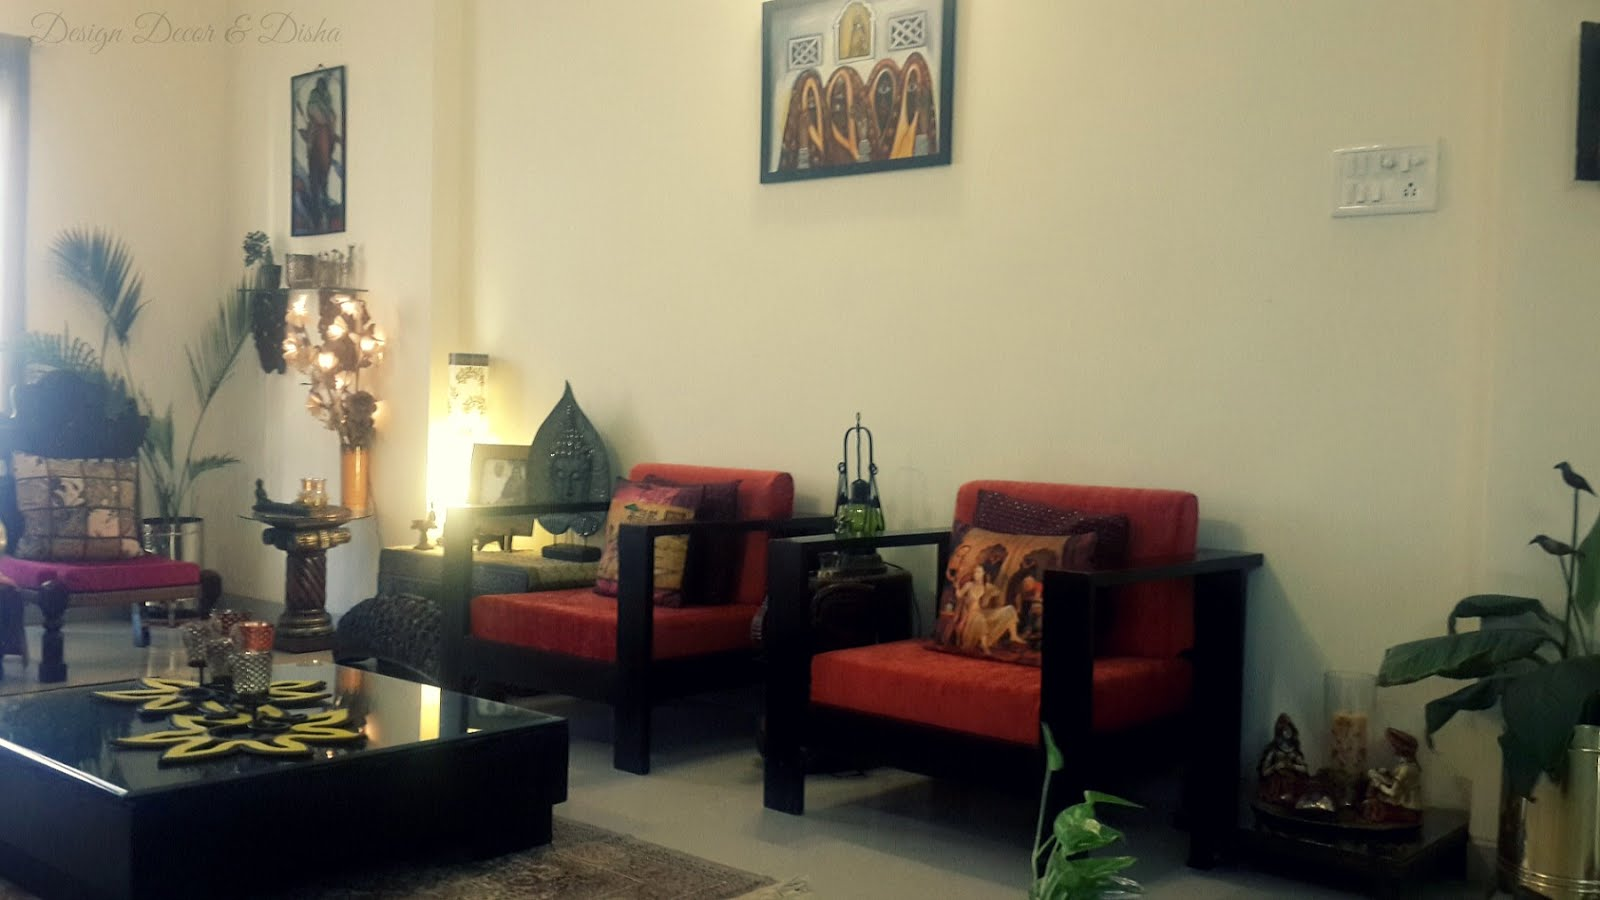 Design decor disha an indian design decor blog home for Interior of indian living room